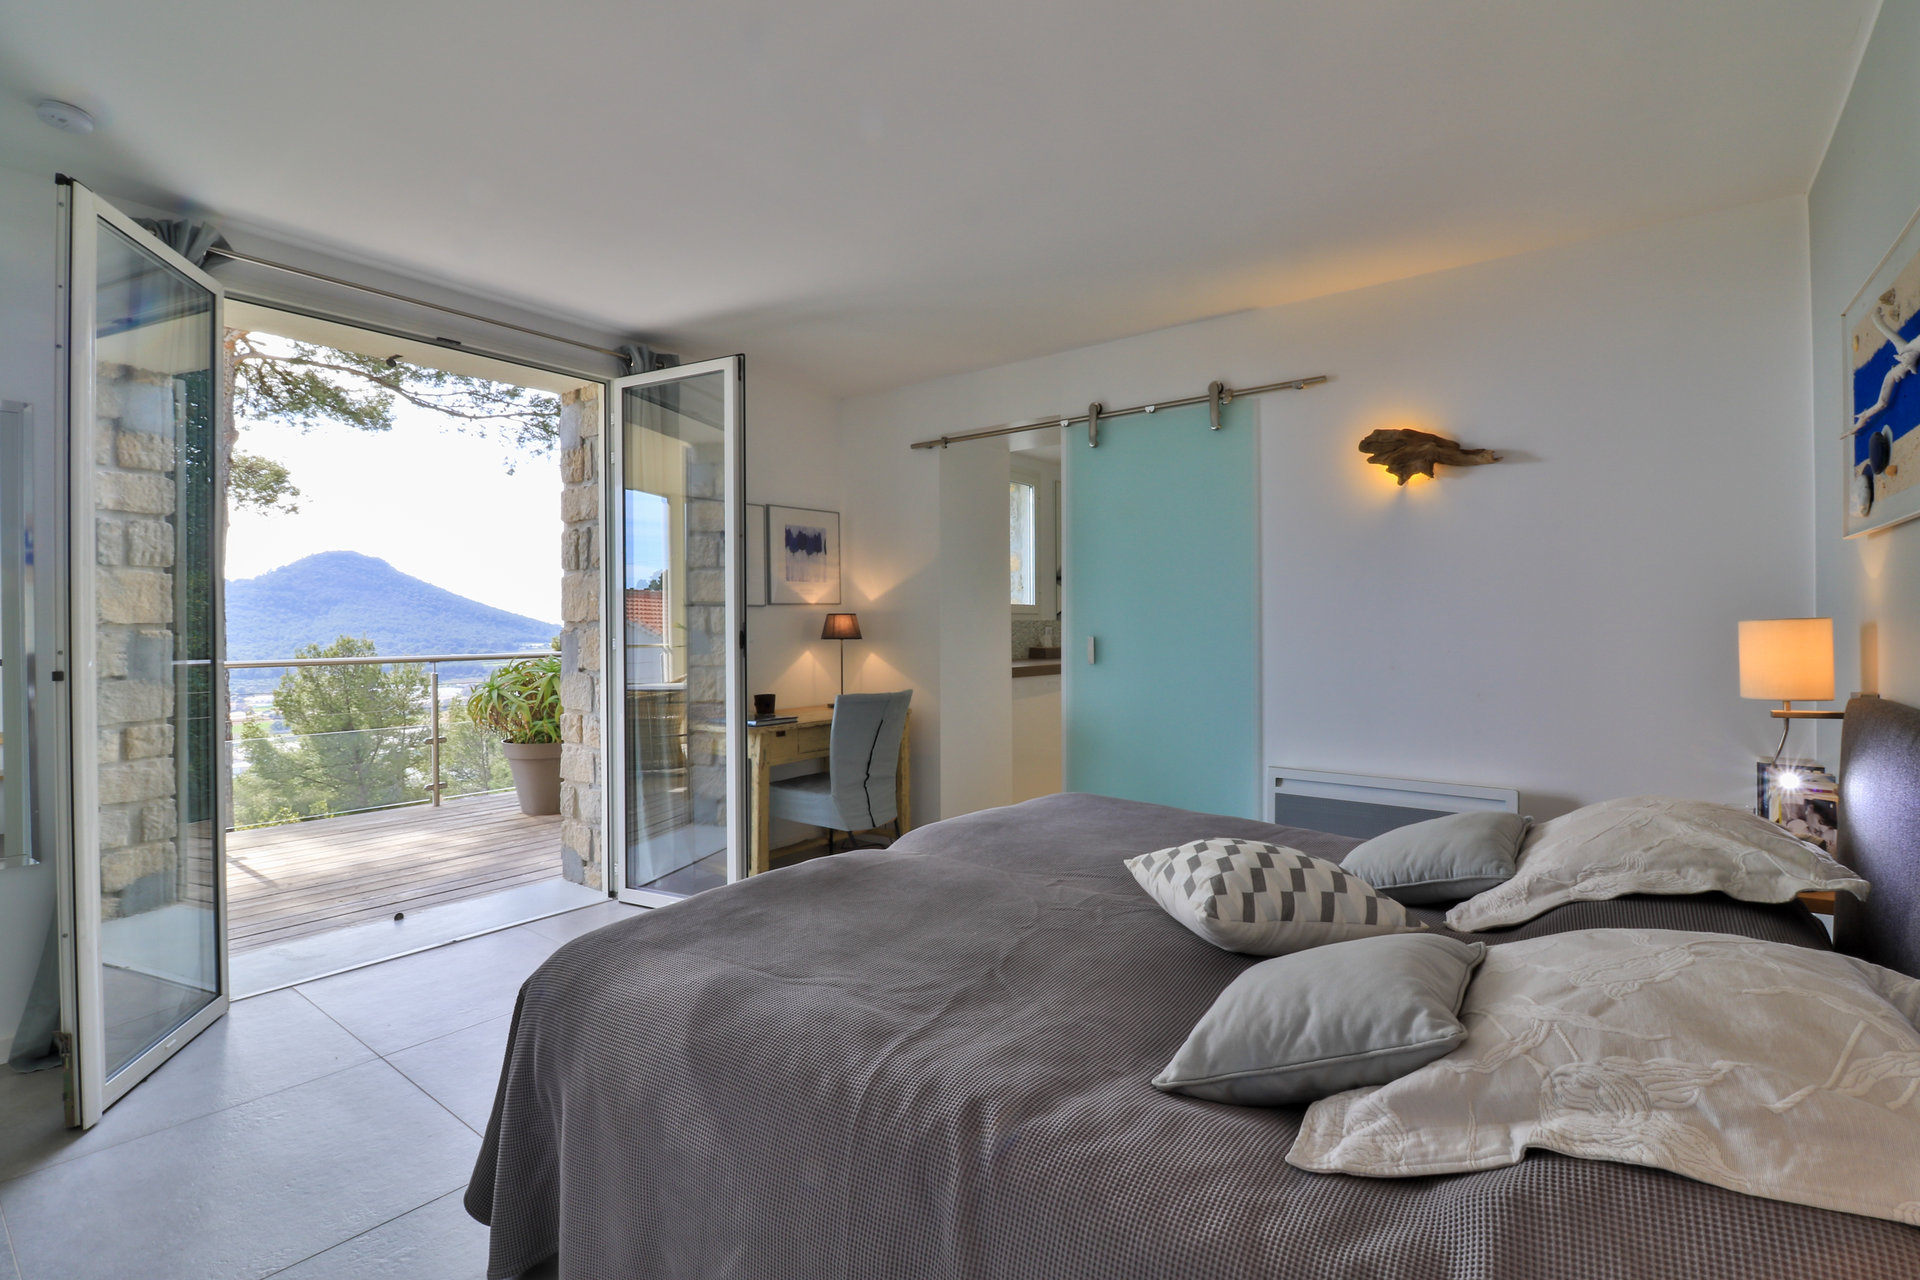 Very stylish renovation for this sea view villa